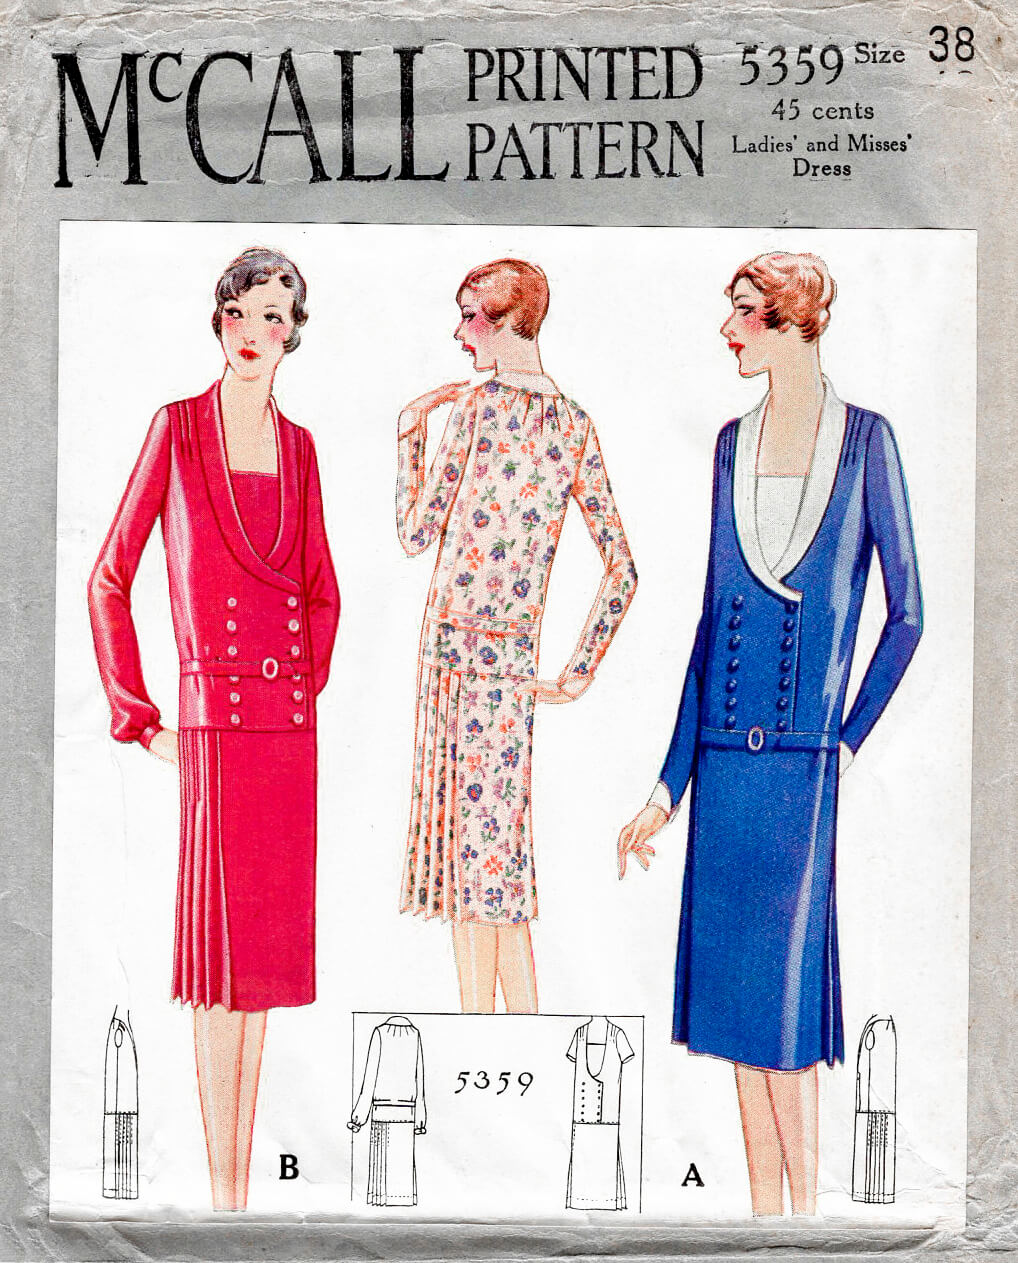 1920s 1927 McCall 5359 flapper era drop waist dress double breasted bodice shawl collar vintage sewing pattern reproduction